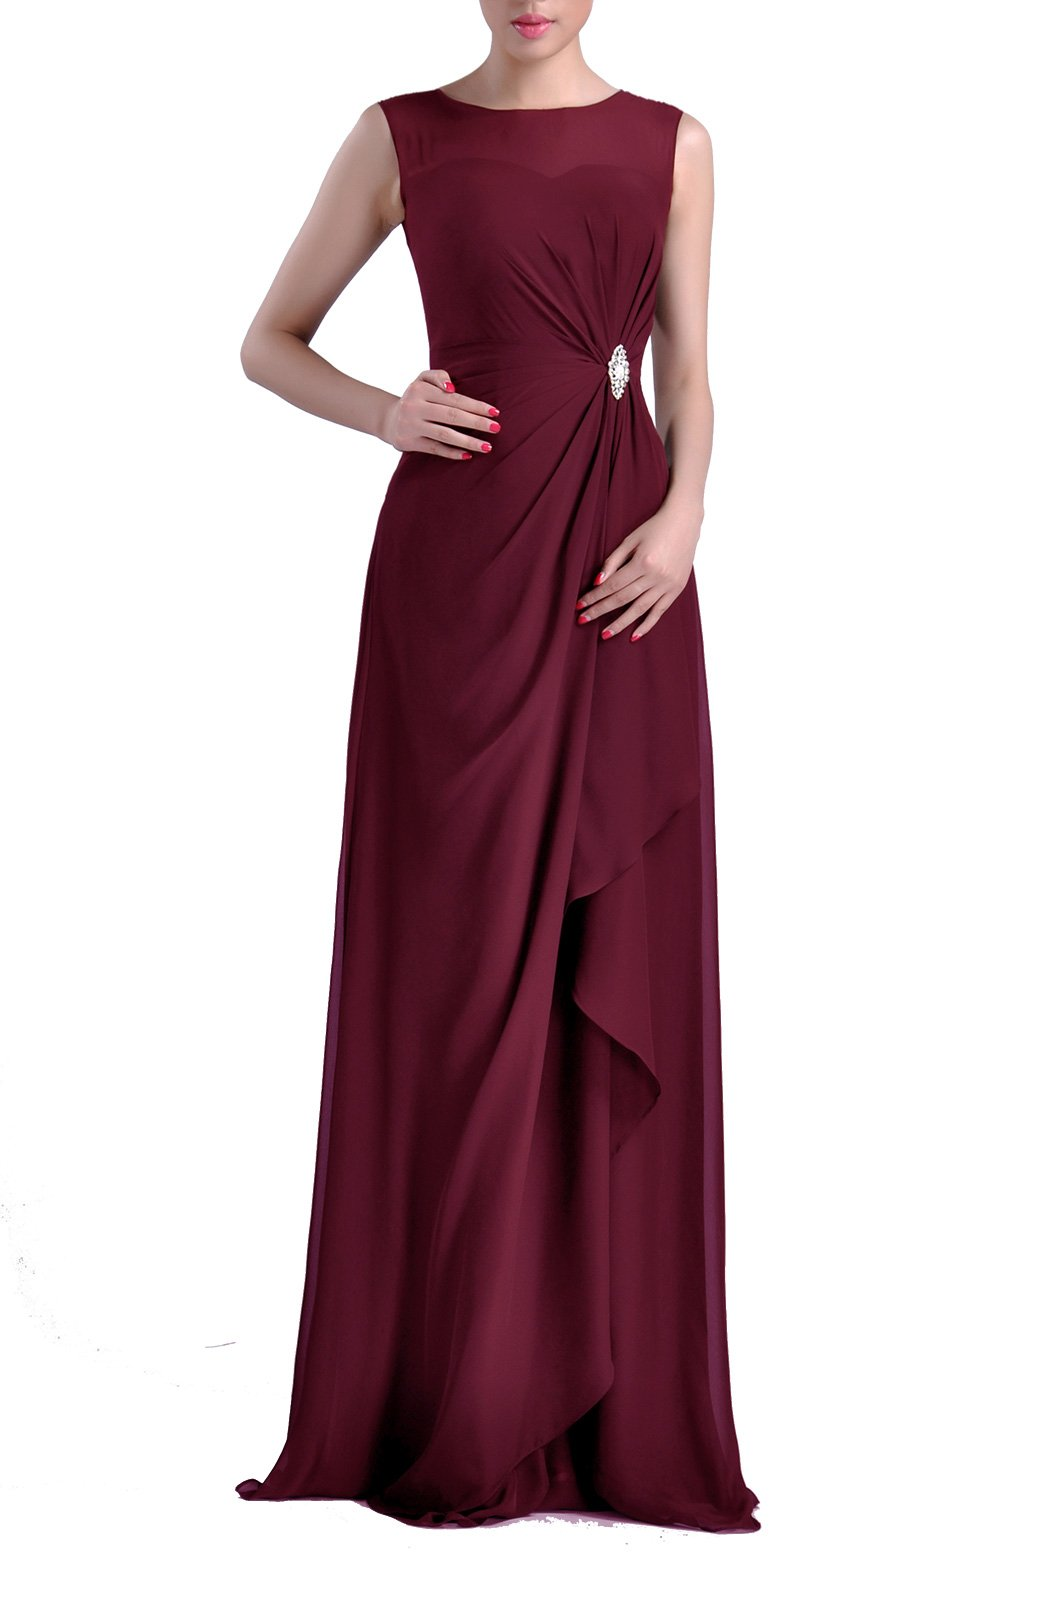 65ae90297851 Formal Bridesmaid Dress Chiffon Special Occasion Long Mother of The Bride  Groom Dress, Color Wine,8